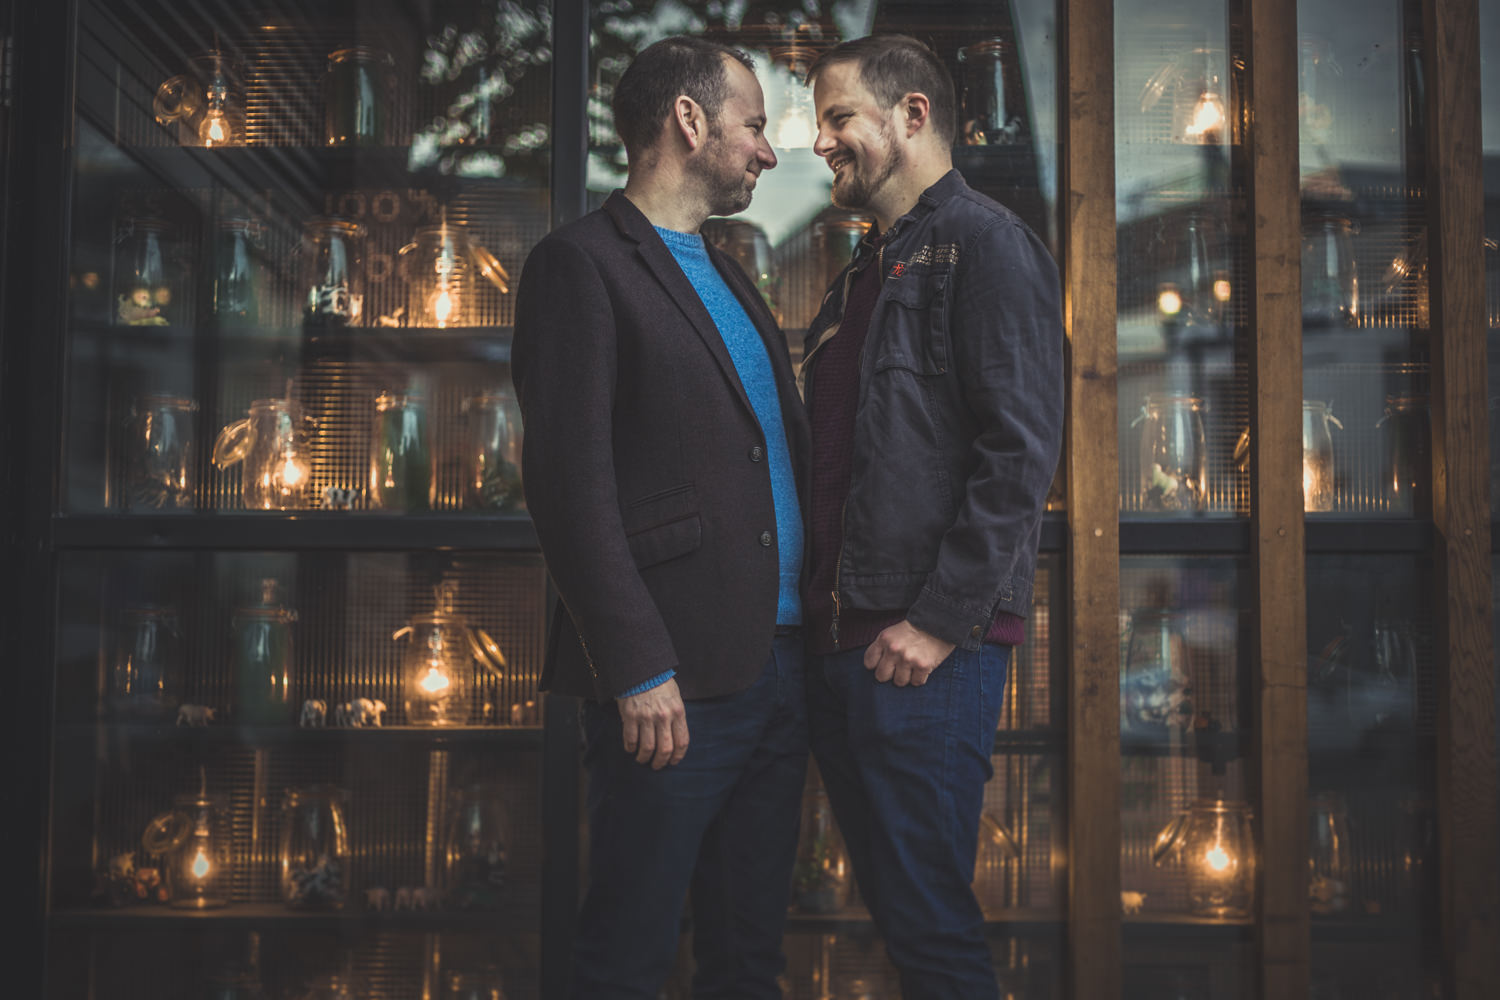 Same Sex Wedding Photographer in Reading